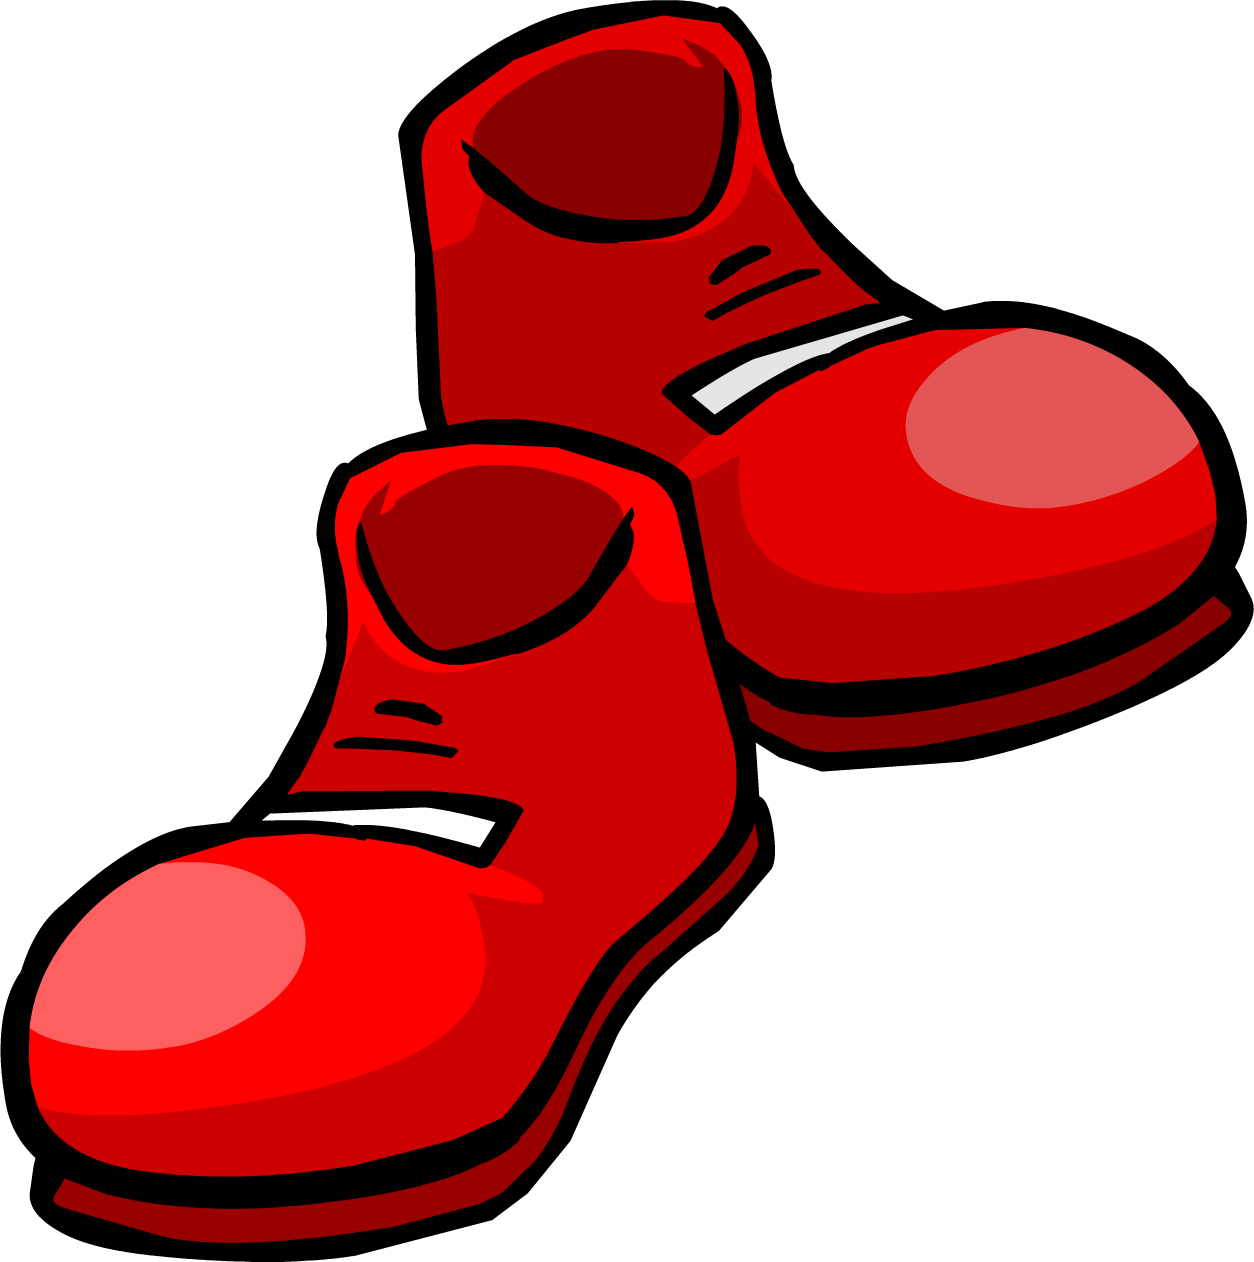 Foot clipart clown. Image shoes png club